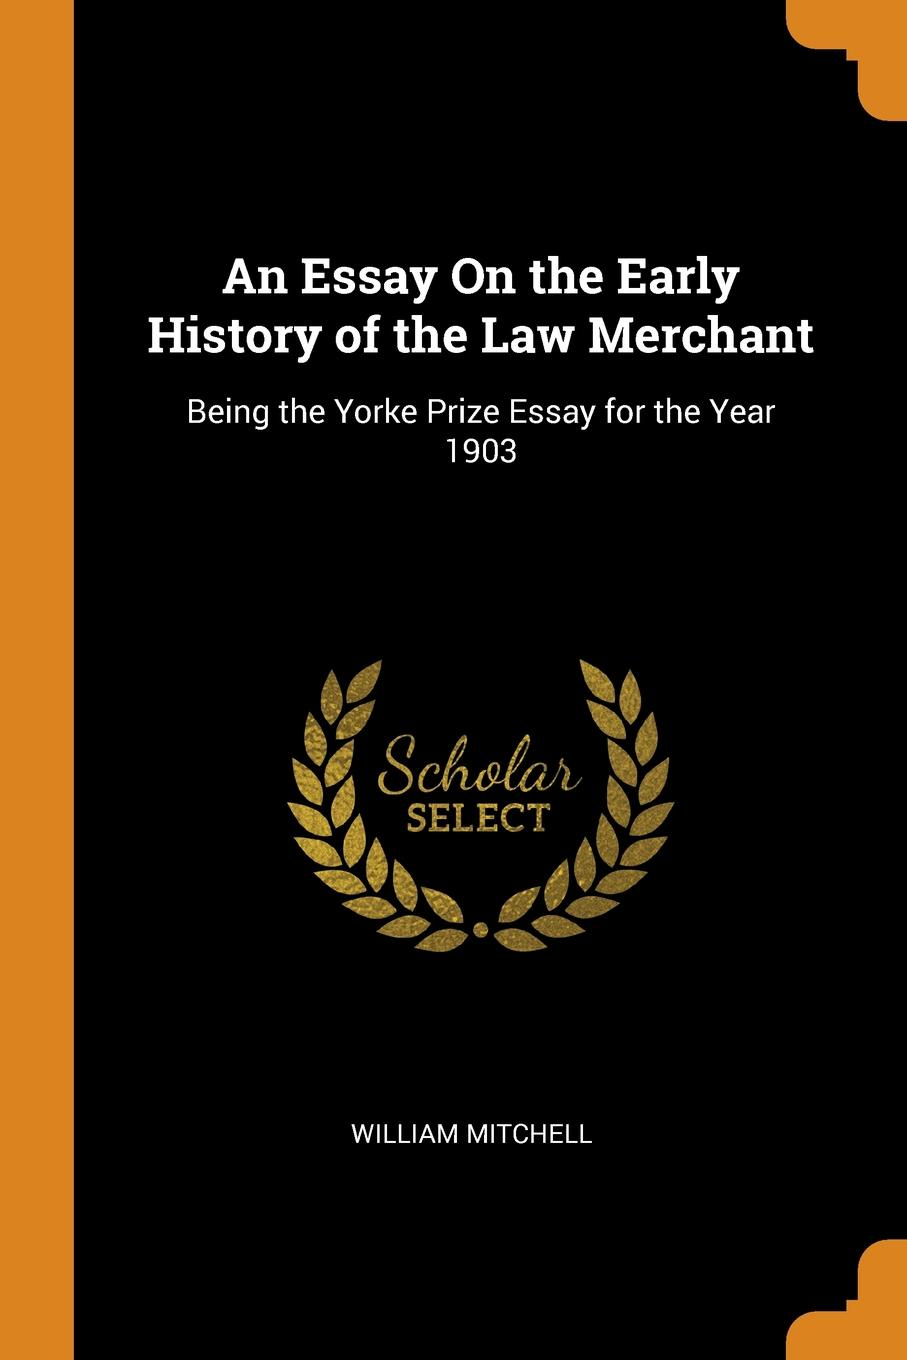 An Essay On the Early History of the Law Merchant. Being the Yorke Prize Essay for the Year 1903. William Mitchell